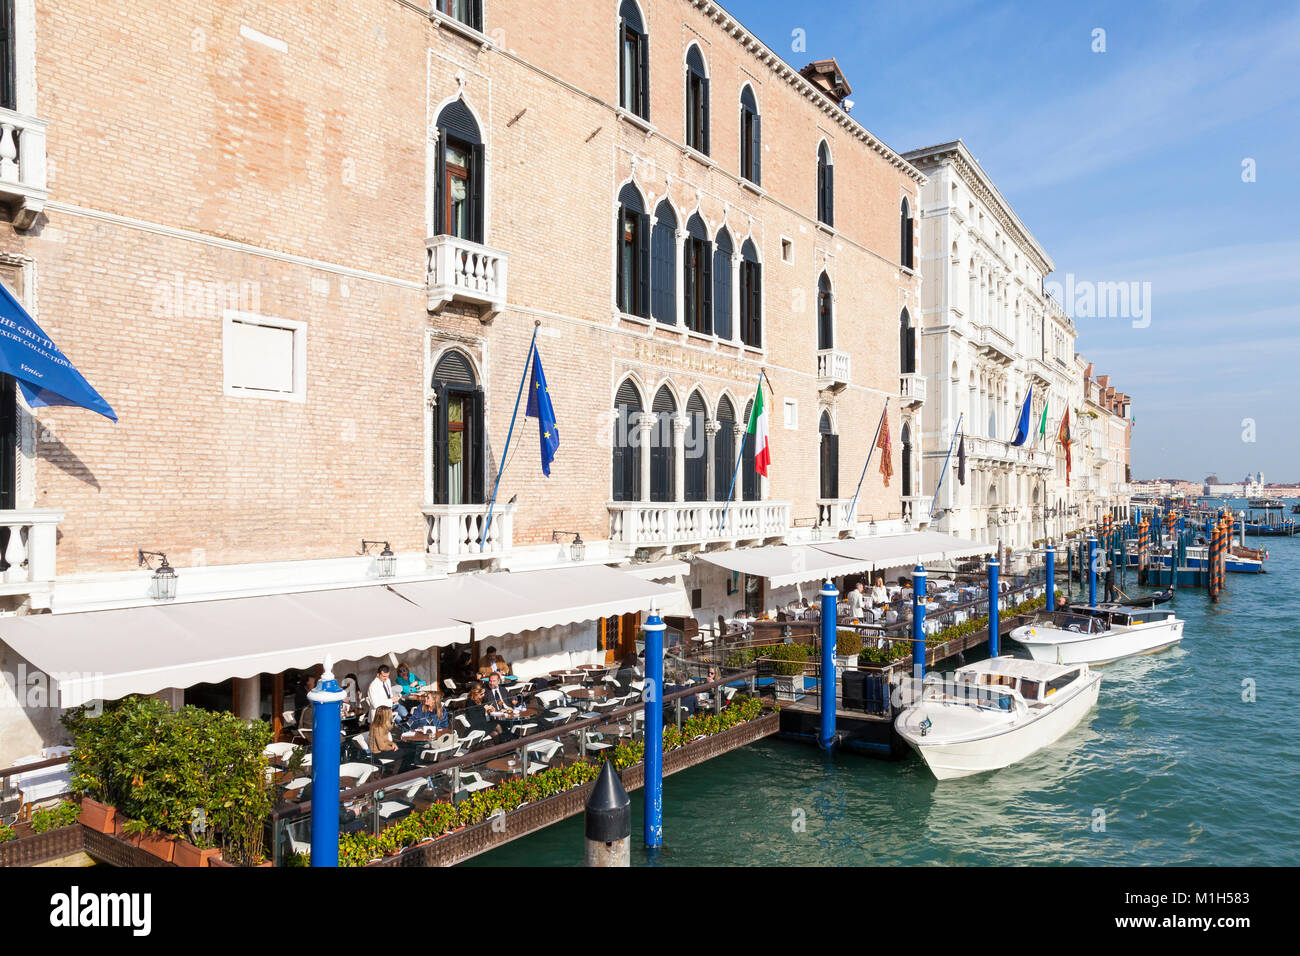 People dining on the terrace of the  luxury Gritti Palace Hotel overlooking the  Grand Canal,  San Marco, Venice, - Stock Image